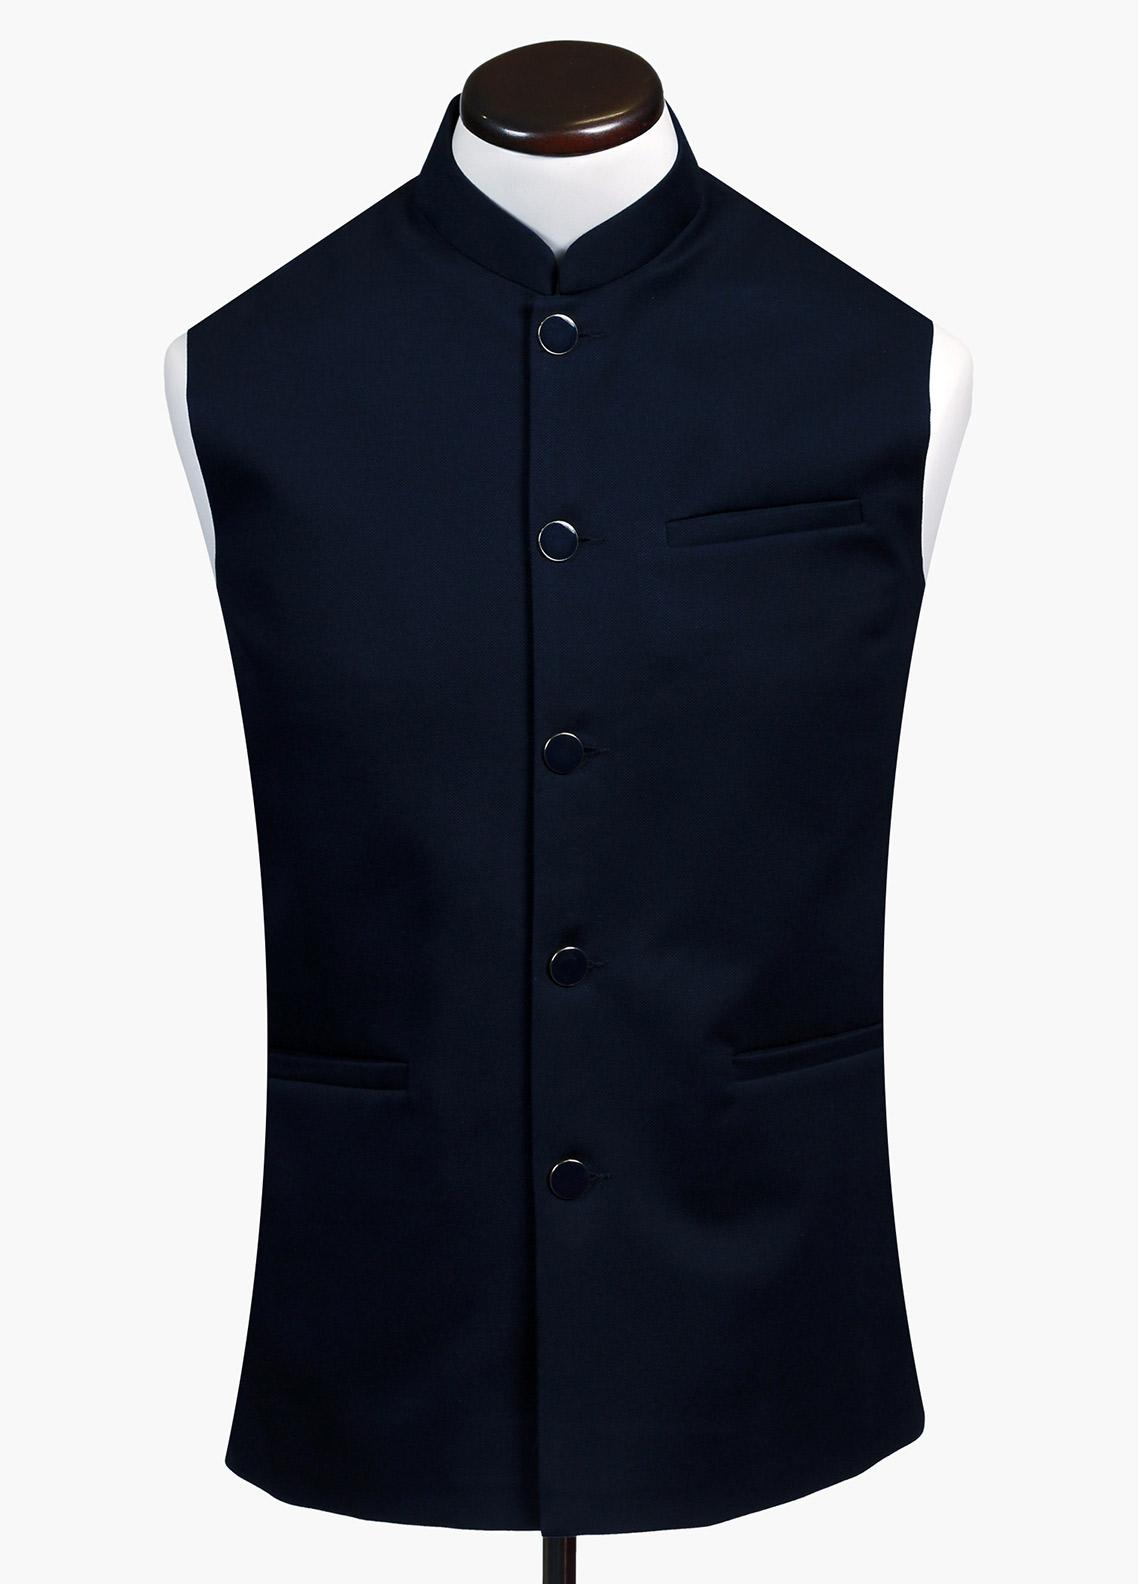 Brumano Cotton Formal Waistcoat for Men - Navy Blue BRM-748